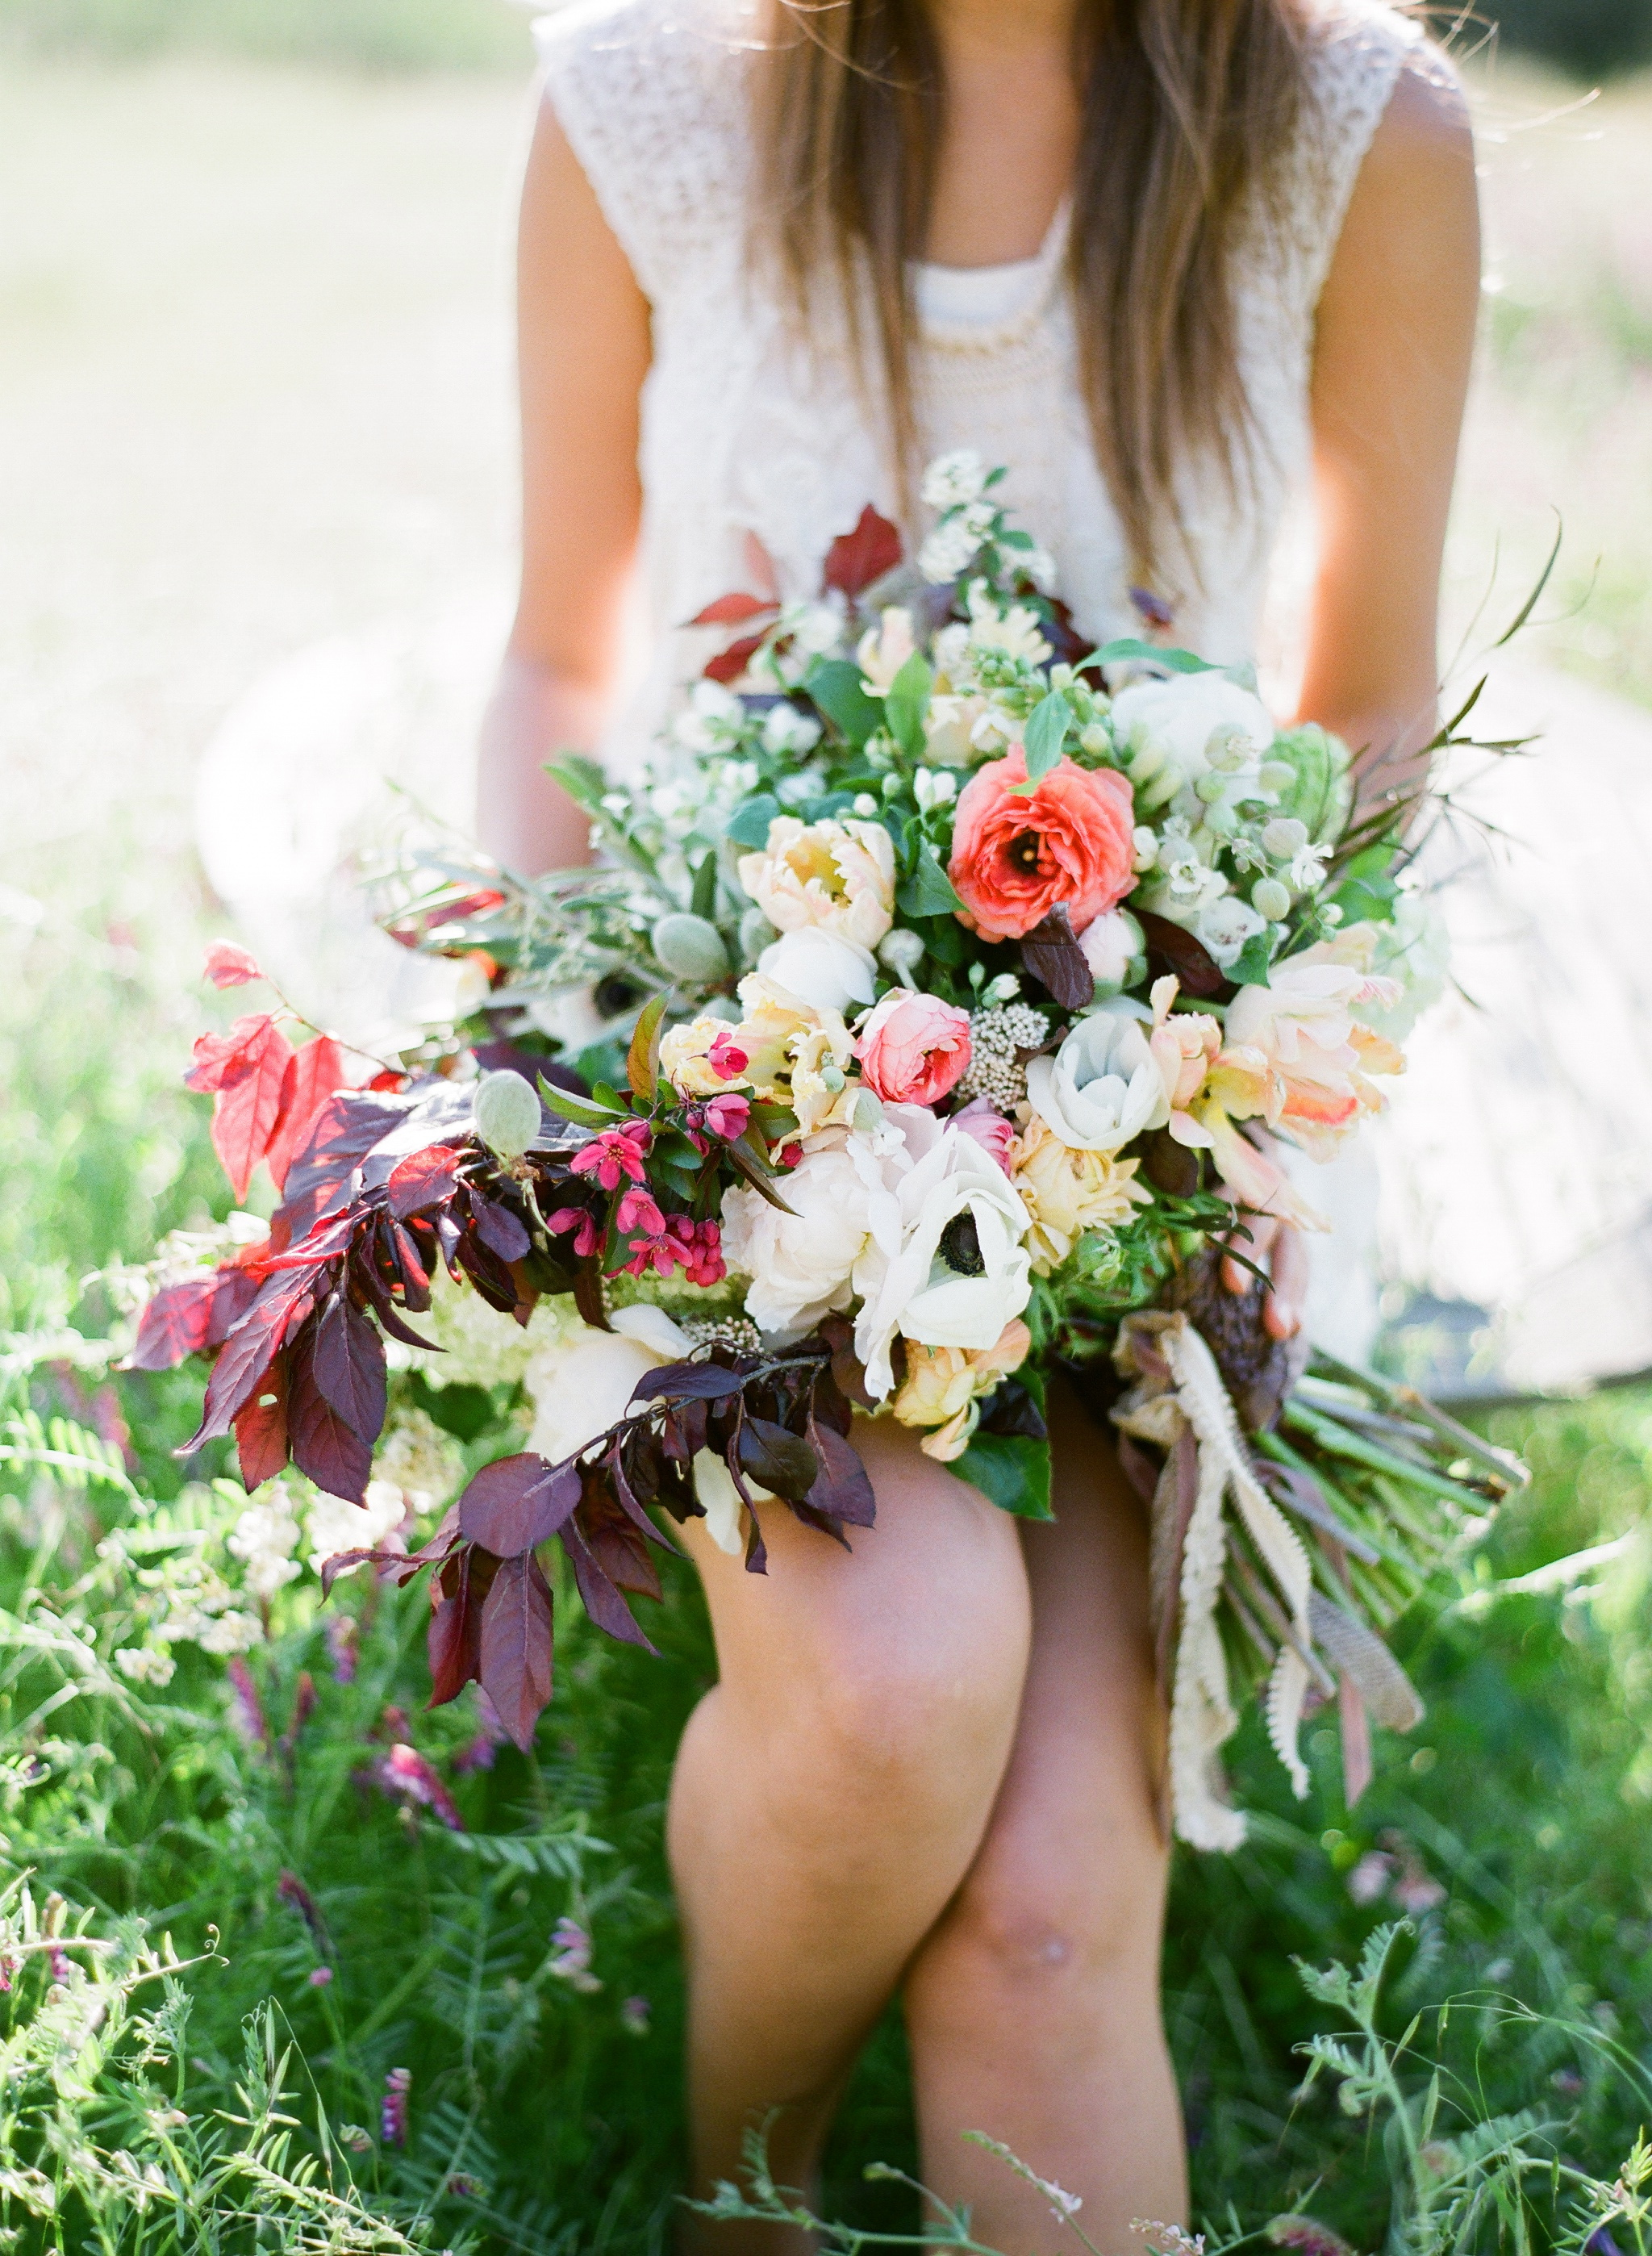 wild bouquet by Passion Roots | Jose Villa Photography | Flower Wild Workshop | Oahu, Hawaii